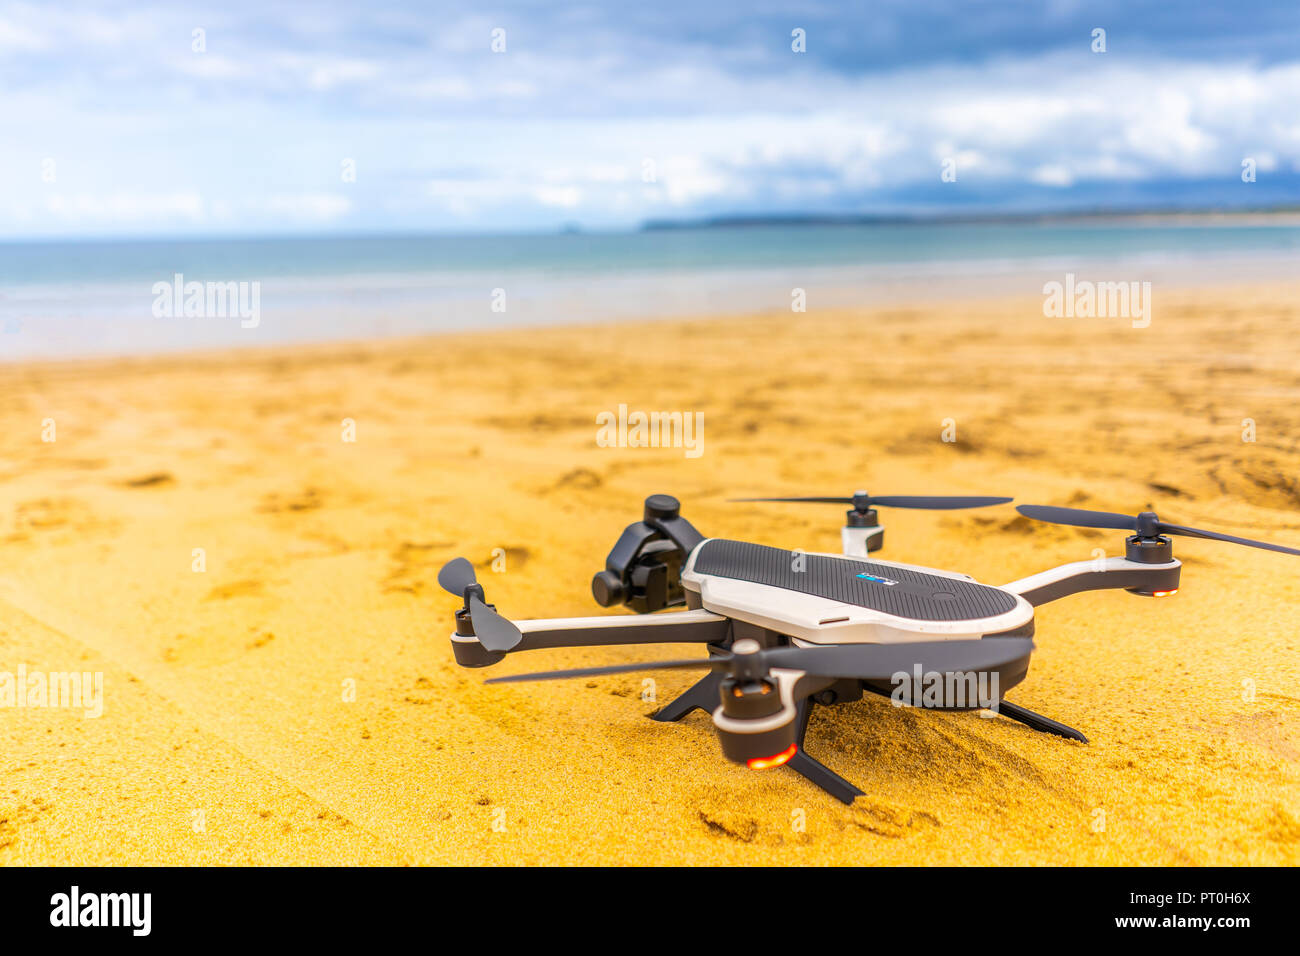 A drone ready to take off from a beautiful sandy beach - Stock Image